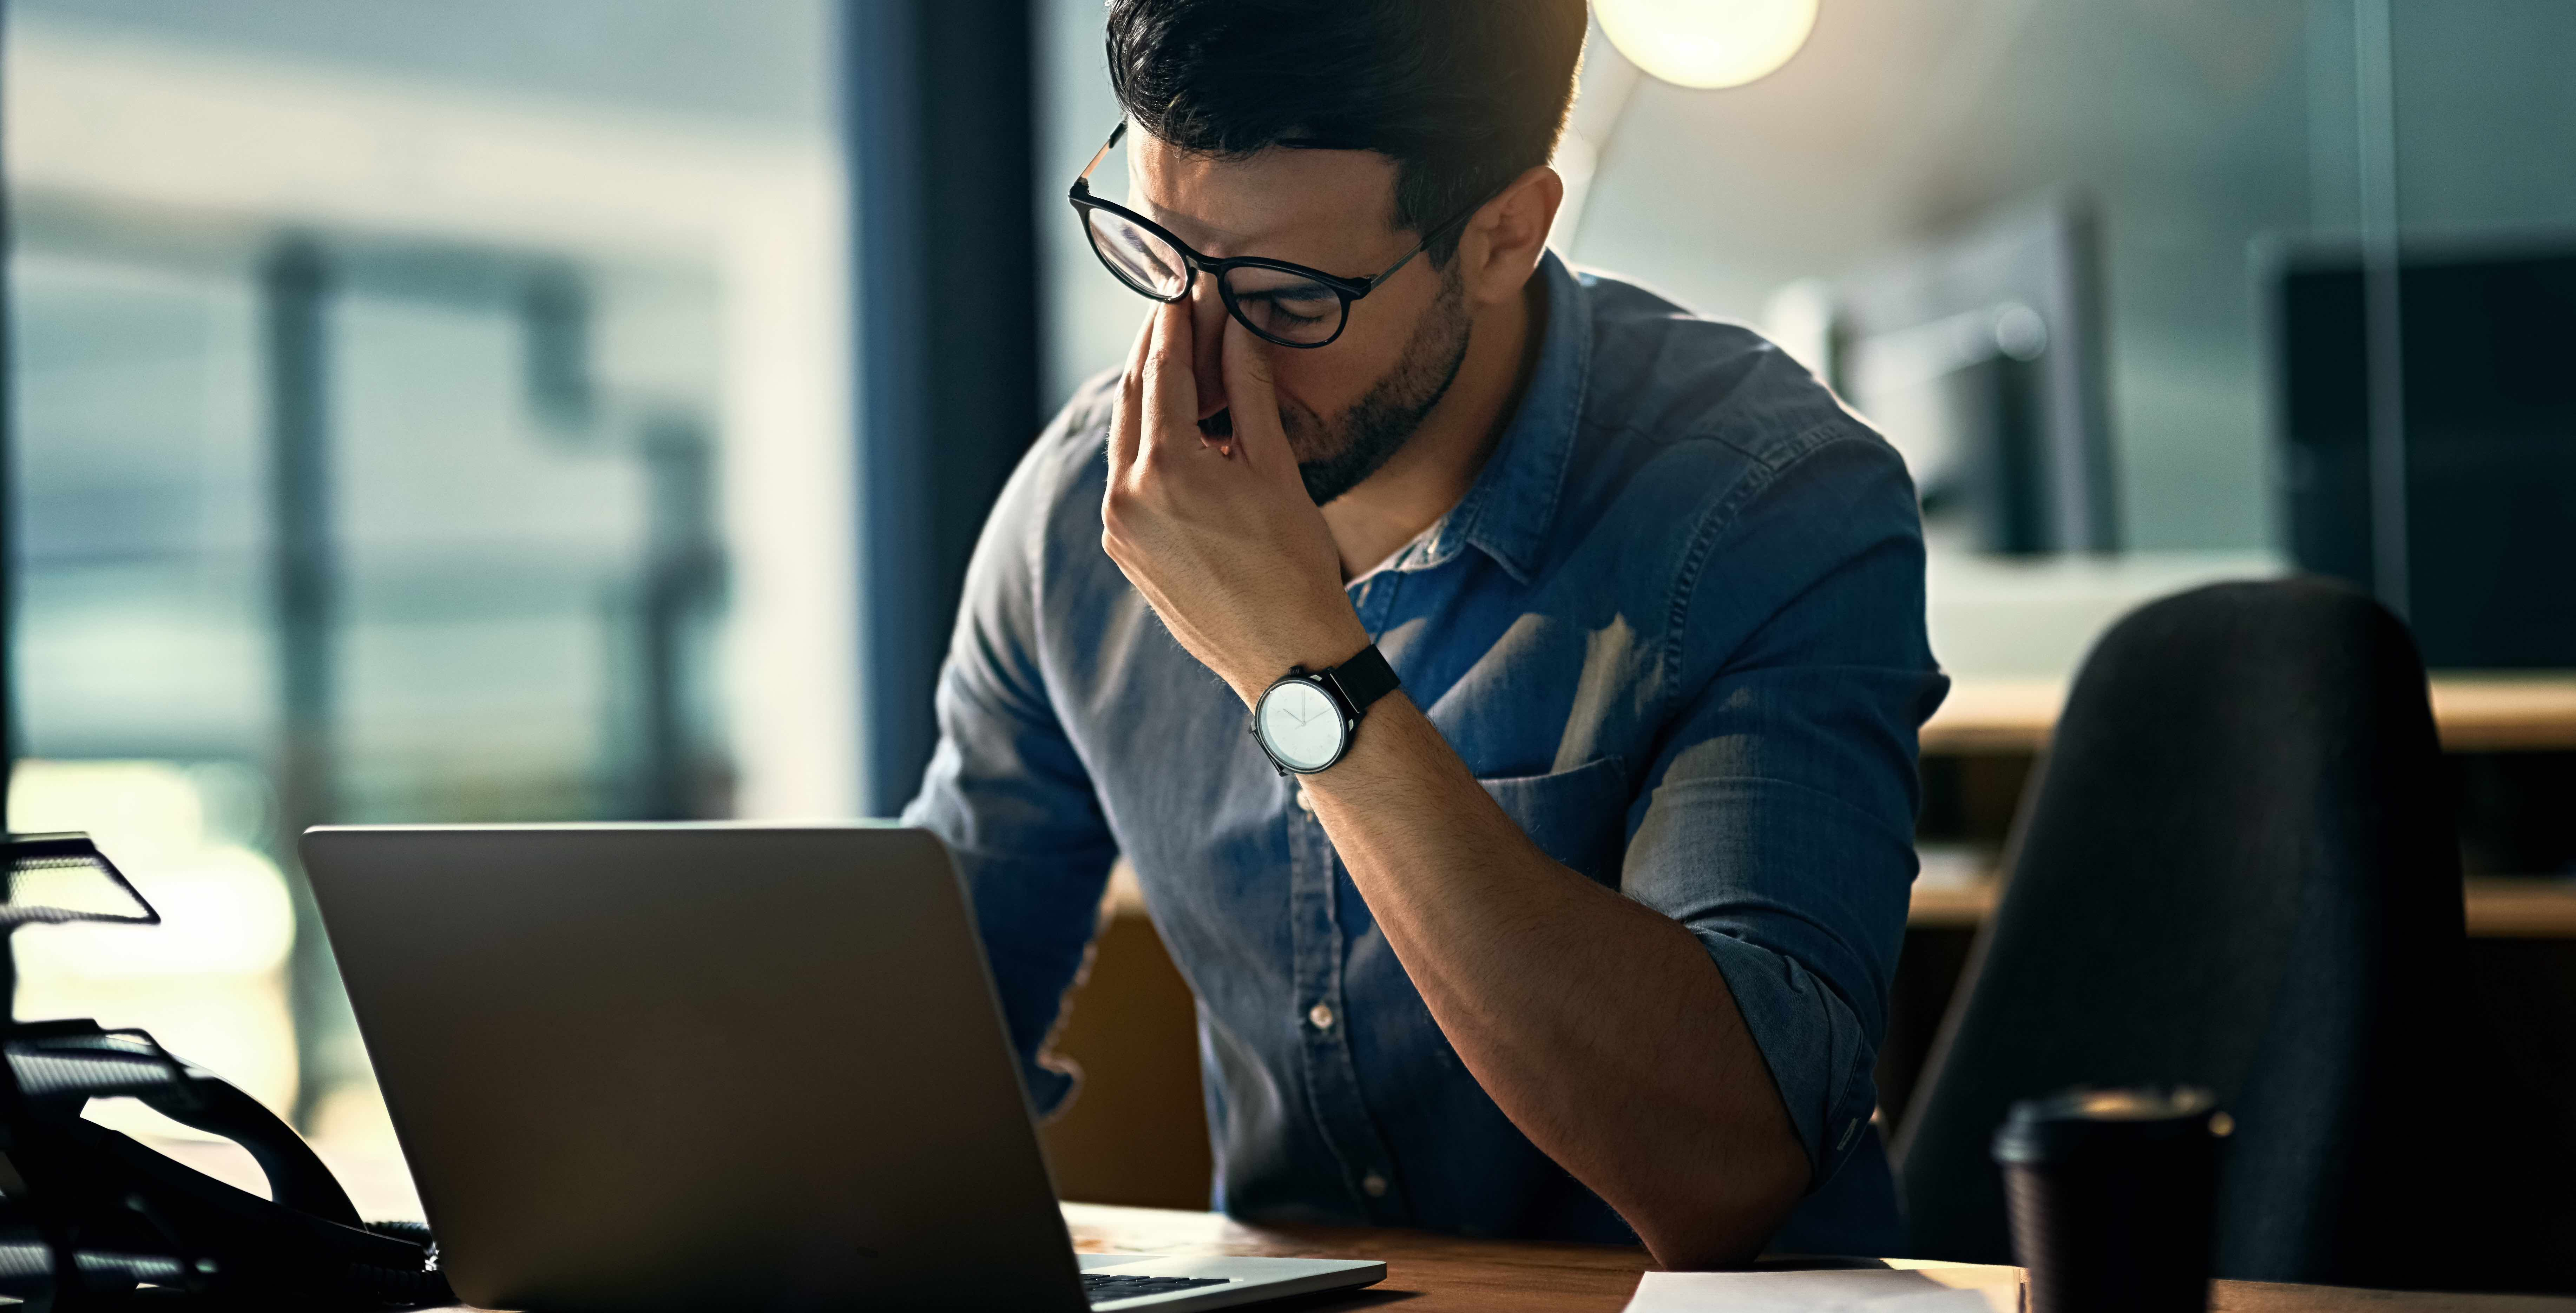 How to prevent burnout amongst cybersecurity pros